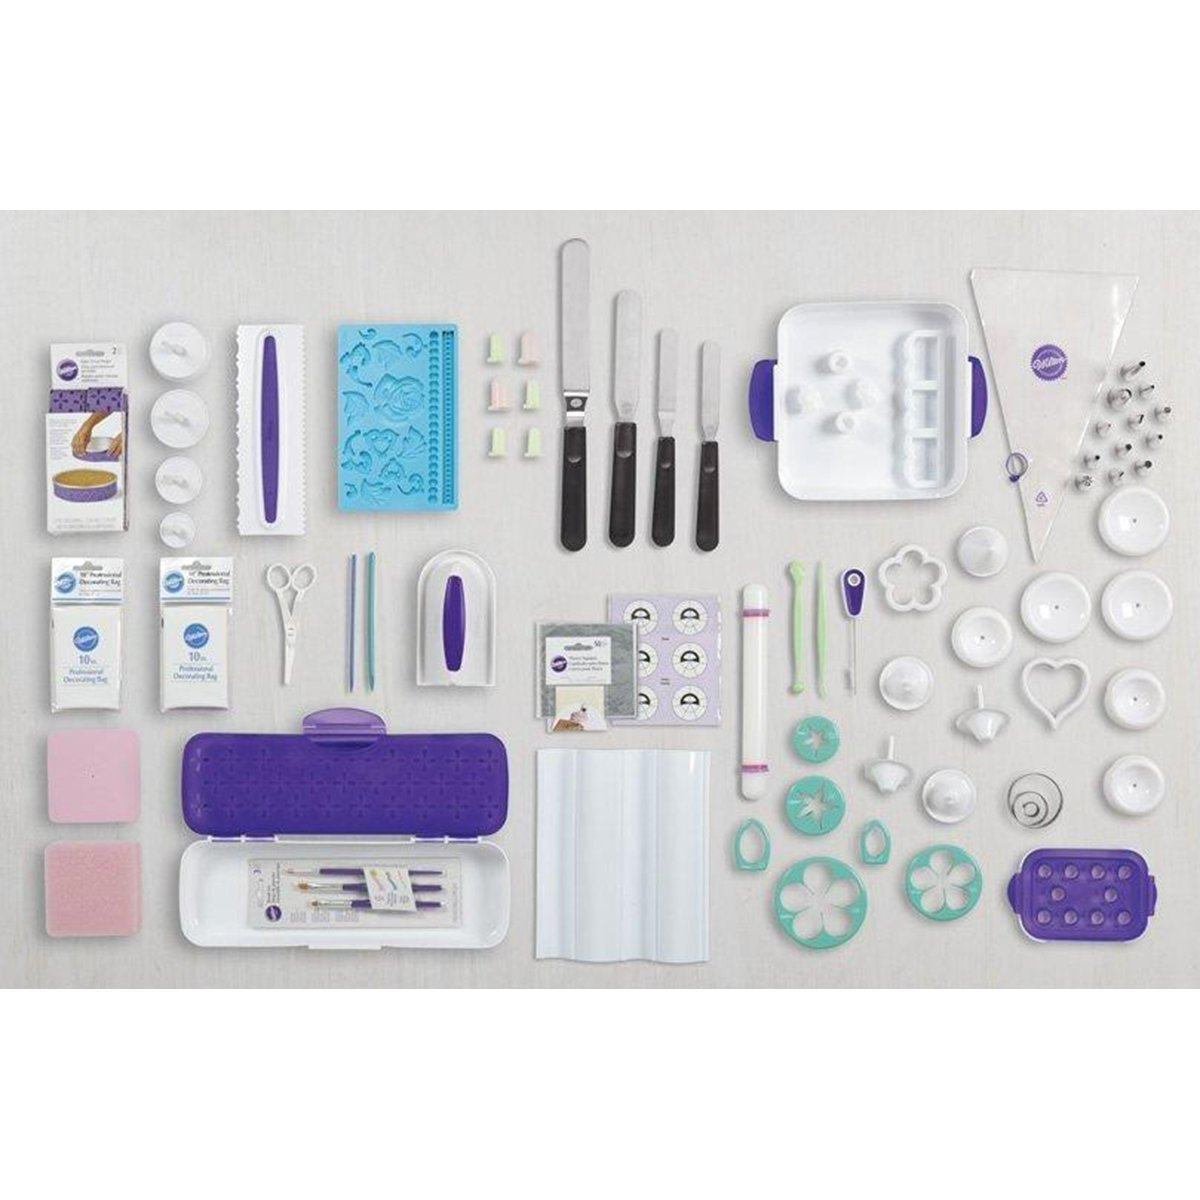 Wilton 21099036 216Piece Ultimate Cake Decorating Set with Tote